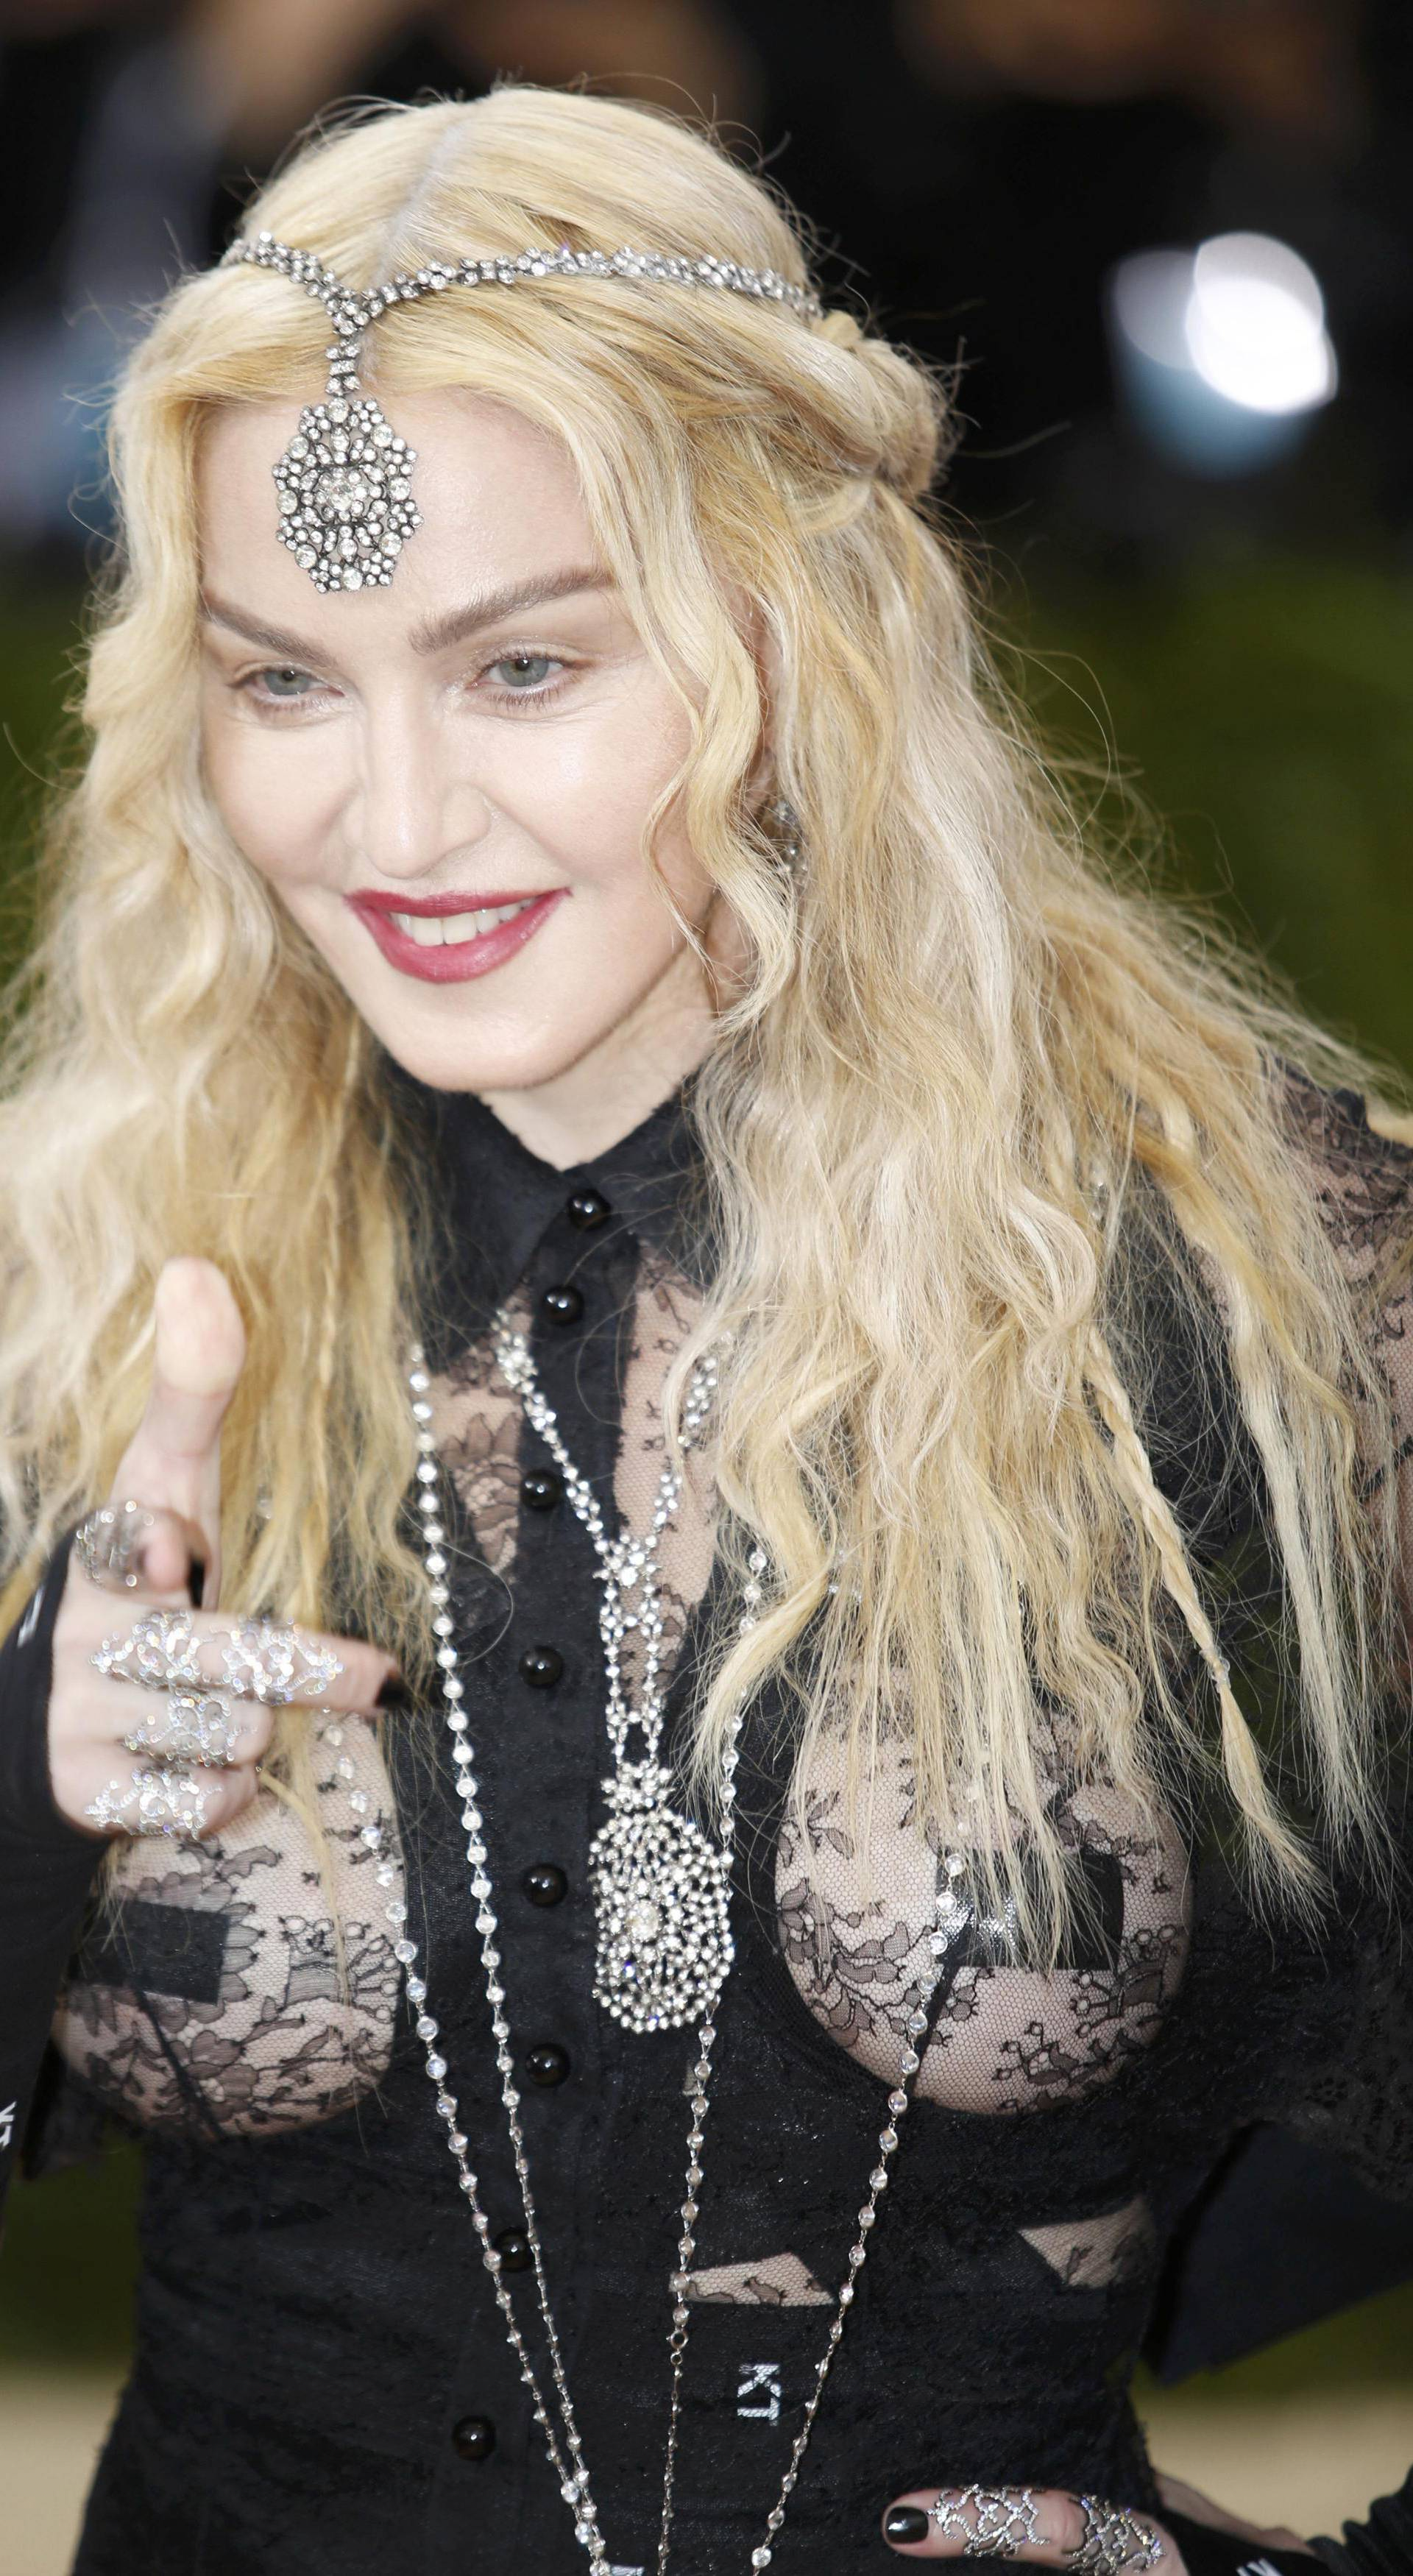 Singer-songwriter Madonna arrives at the Met Gala in New York